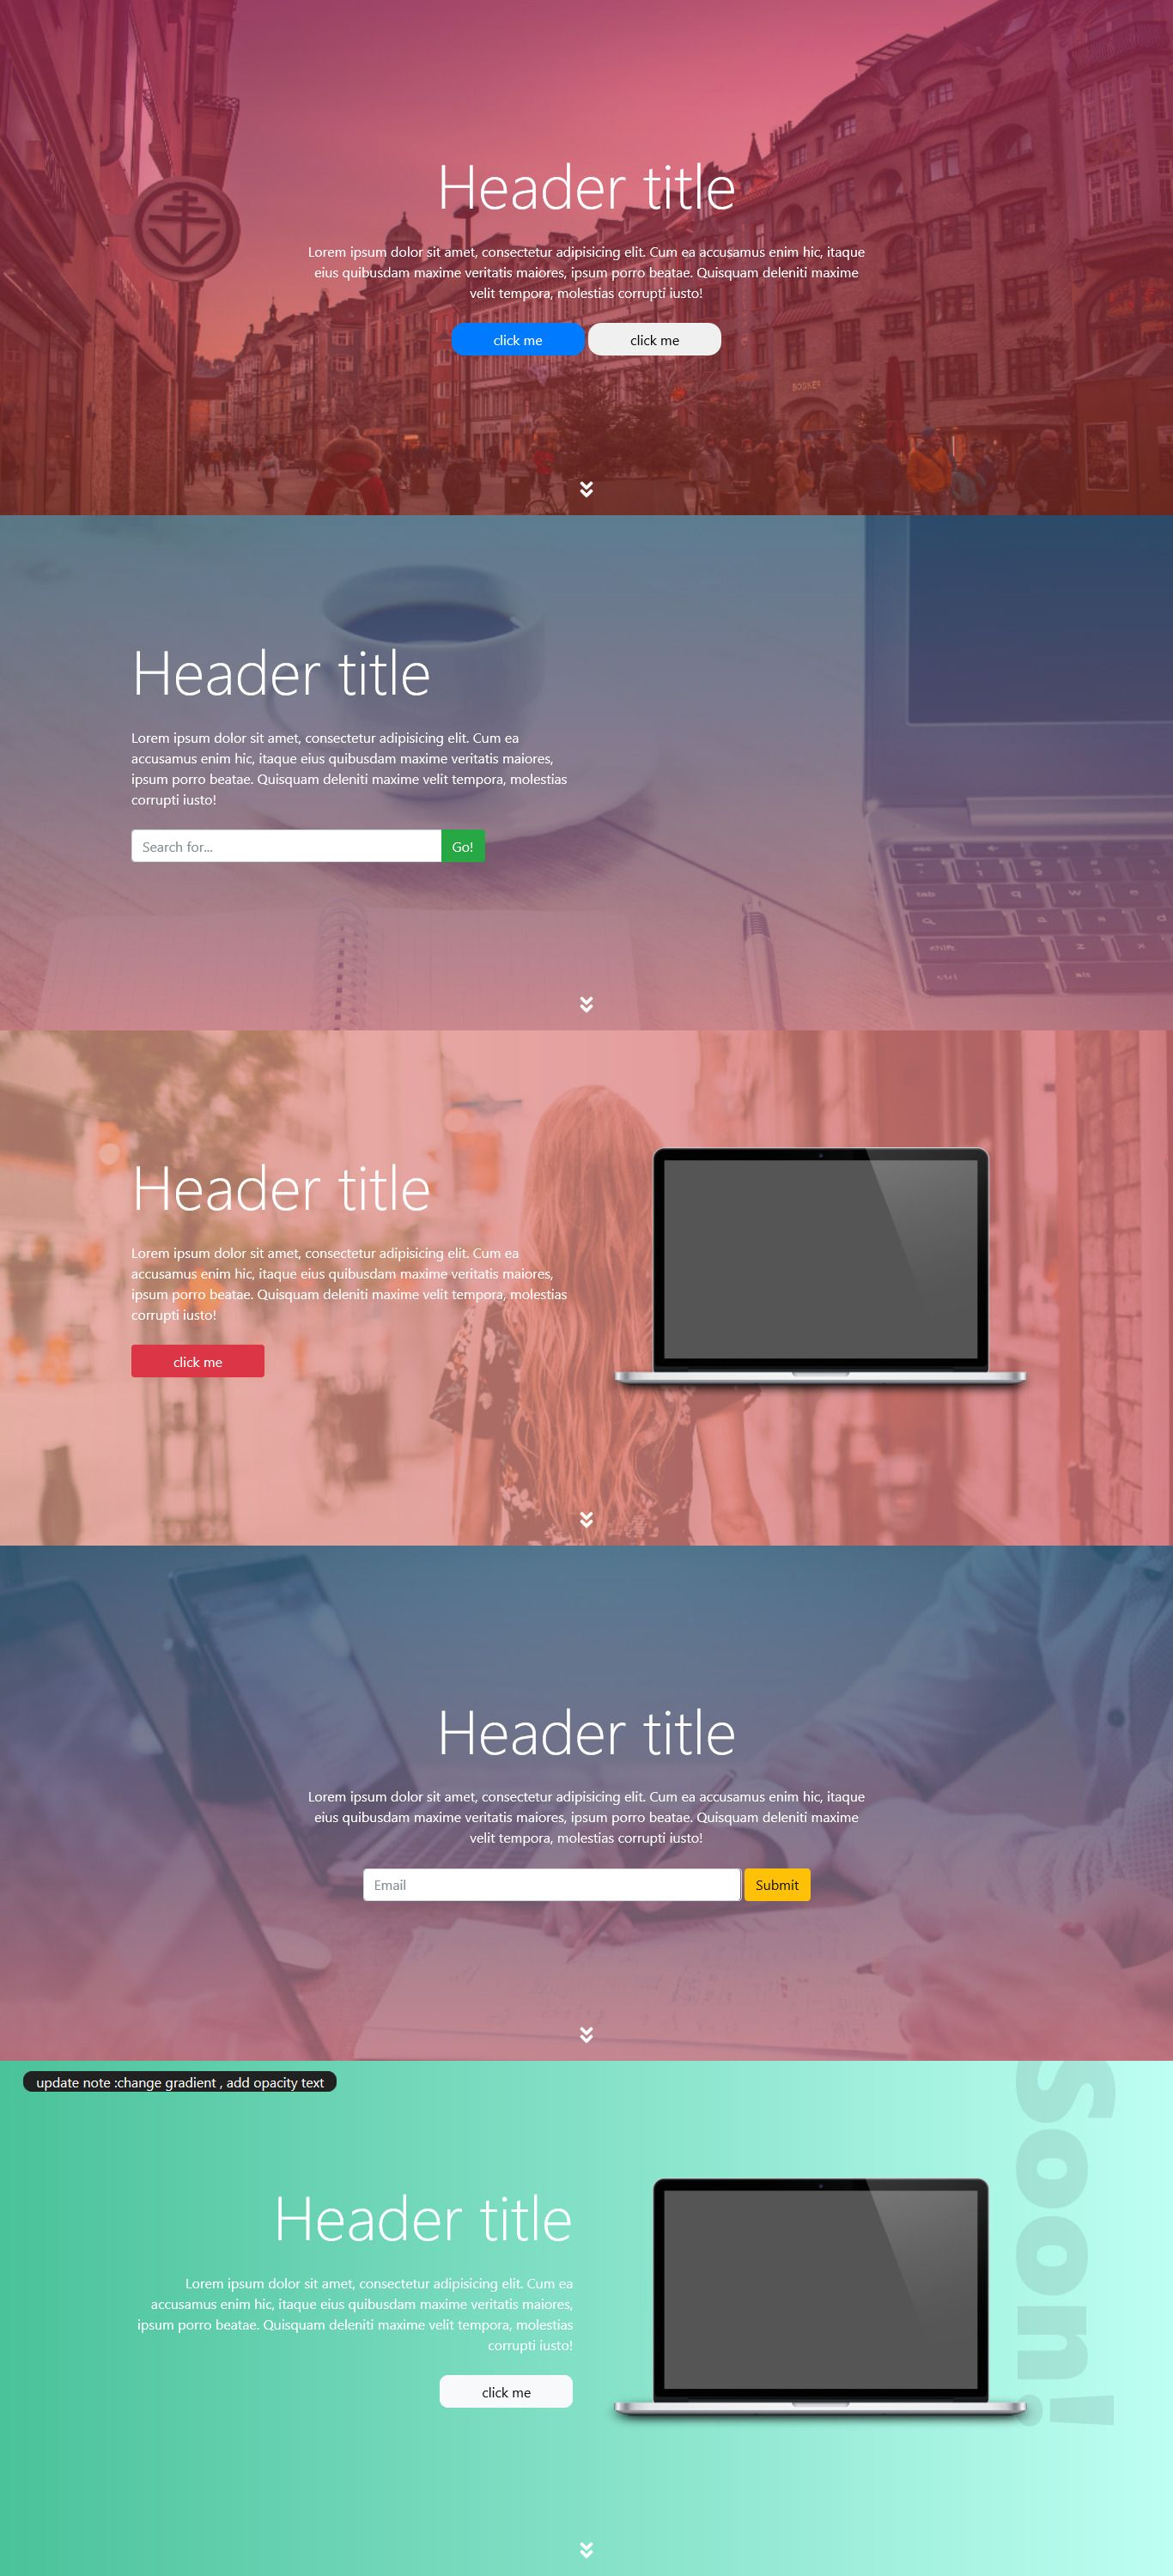 header Sections #webdesign #ui #layout #section #bootstrap